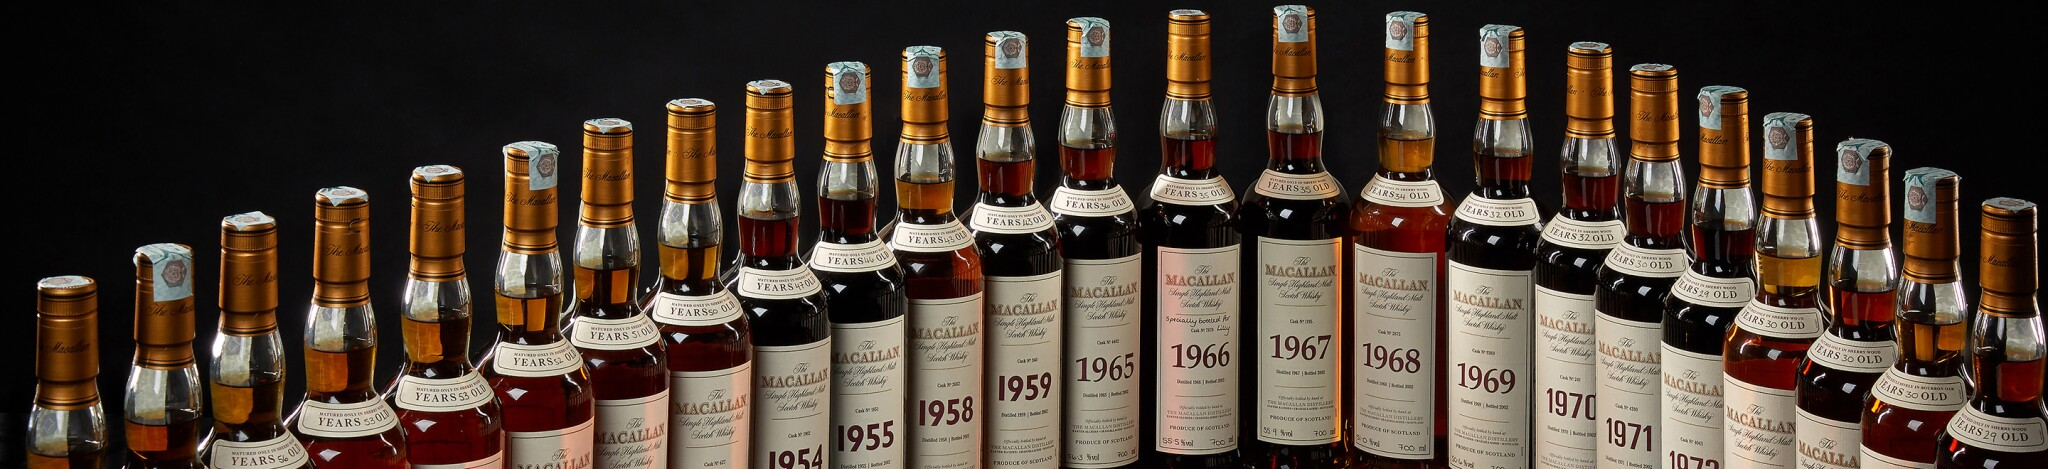 Distilled | The Macallan Fine and Rare Collection + More